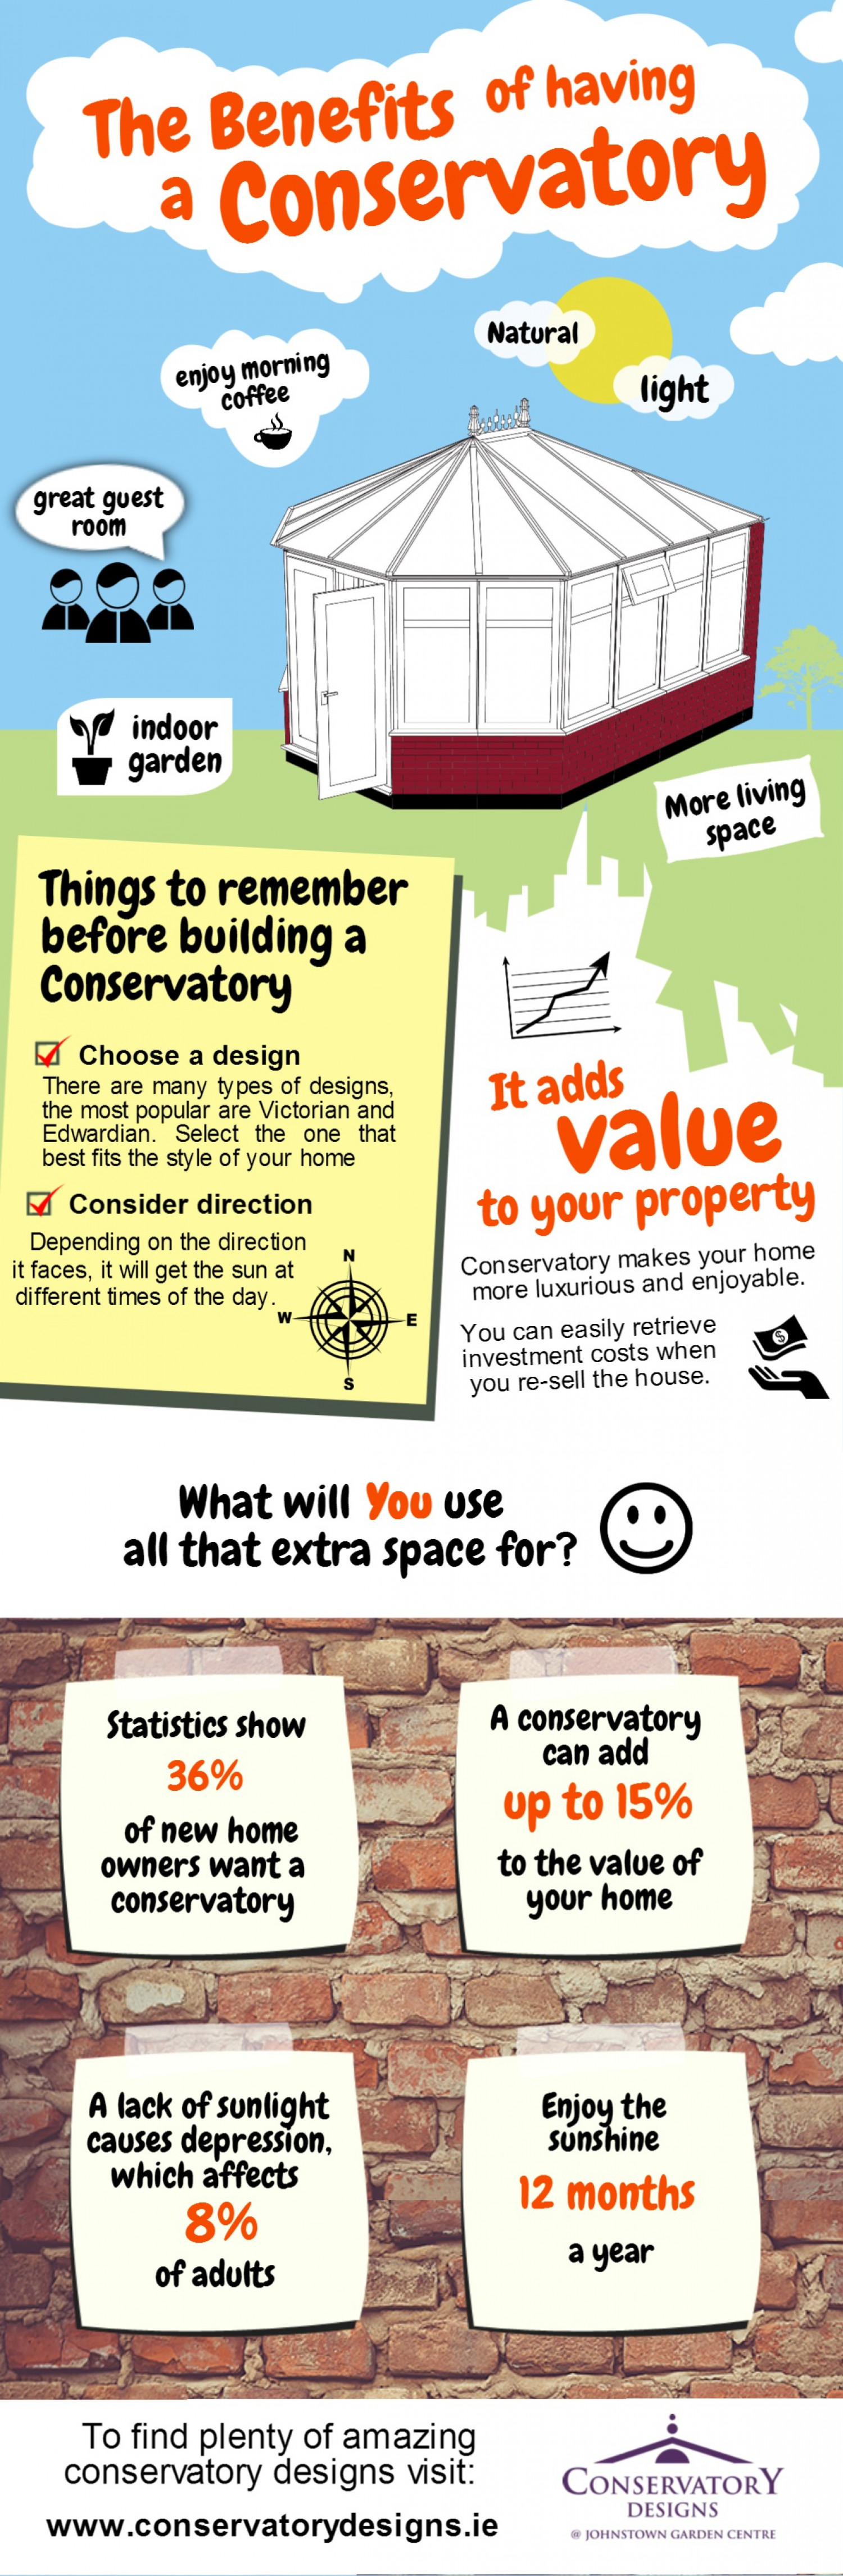 The Benefits of Having a Conservatory Infographic